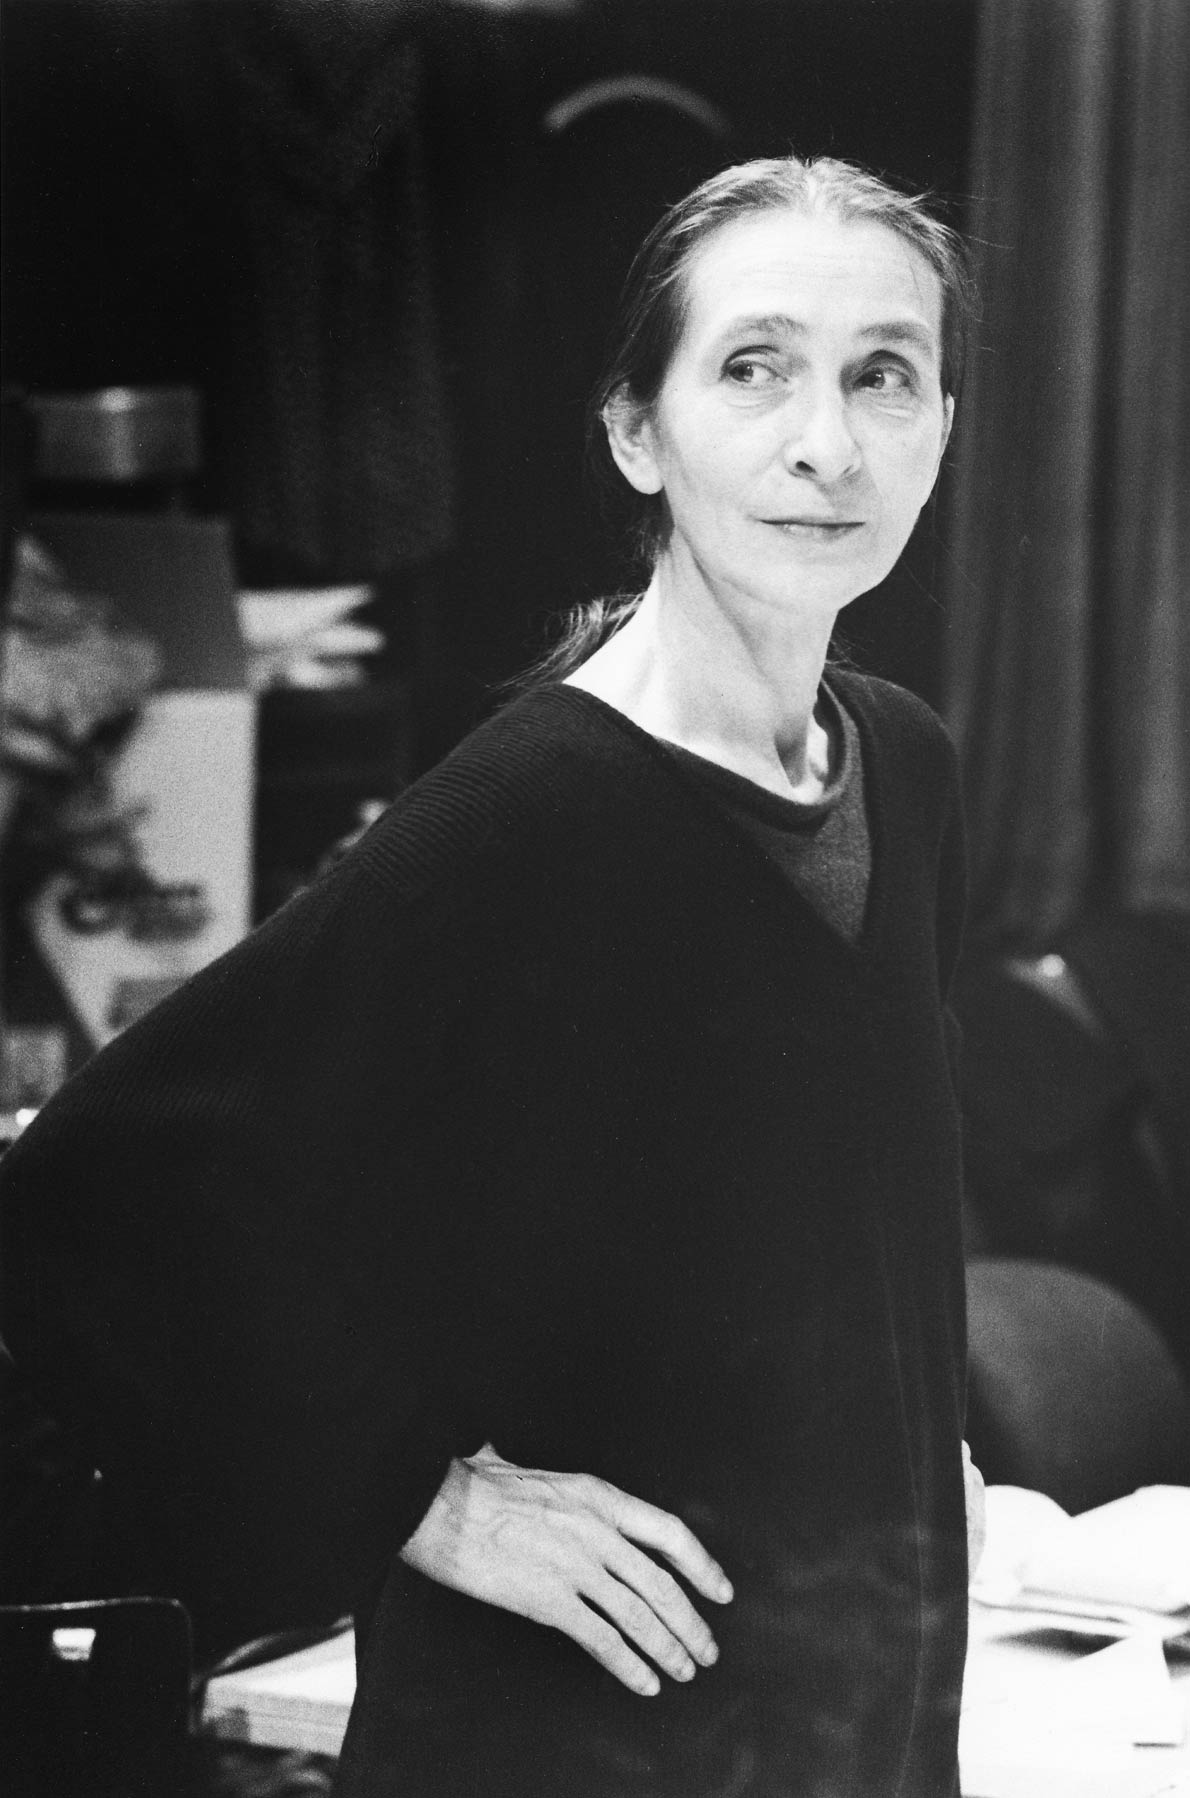 Photo Wilfried Krüger, © Pina Bausch Foundation